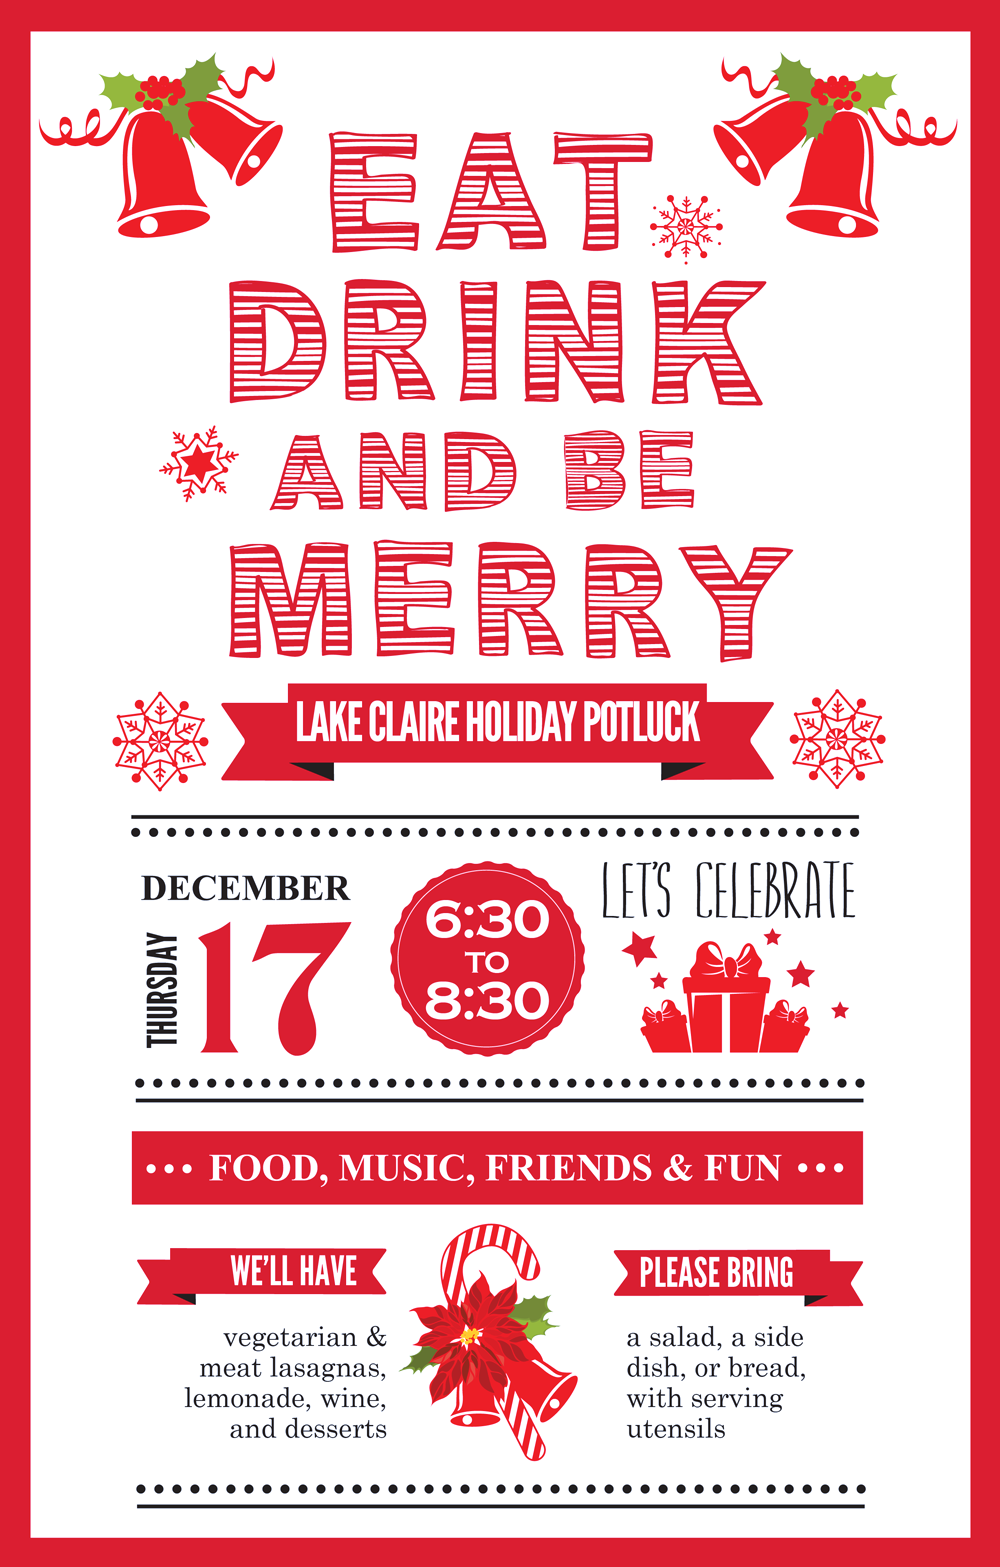 Lake Claire Holiday Potluck: 12/17 6:30 pm – Lake Claire Neighbors